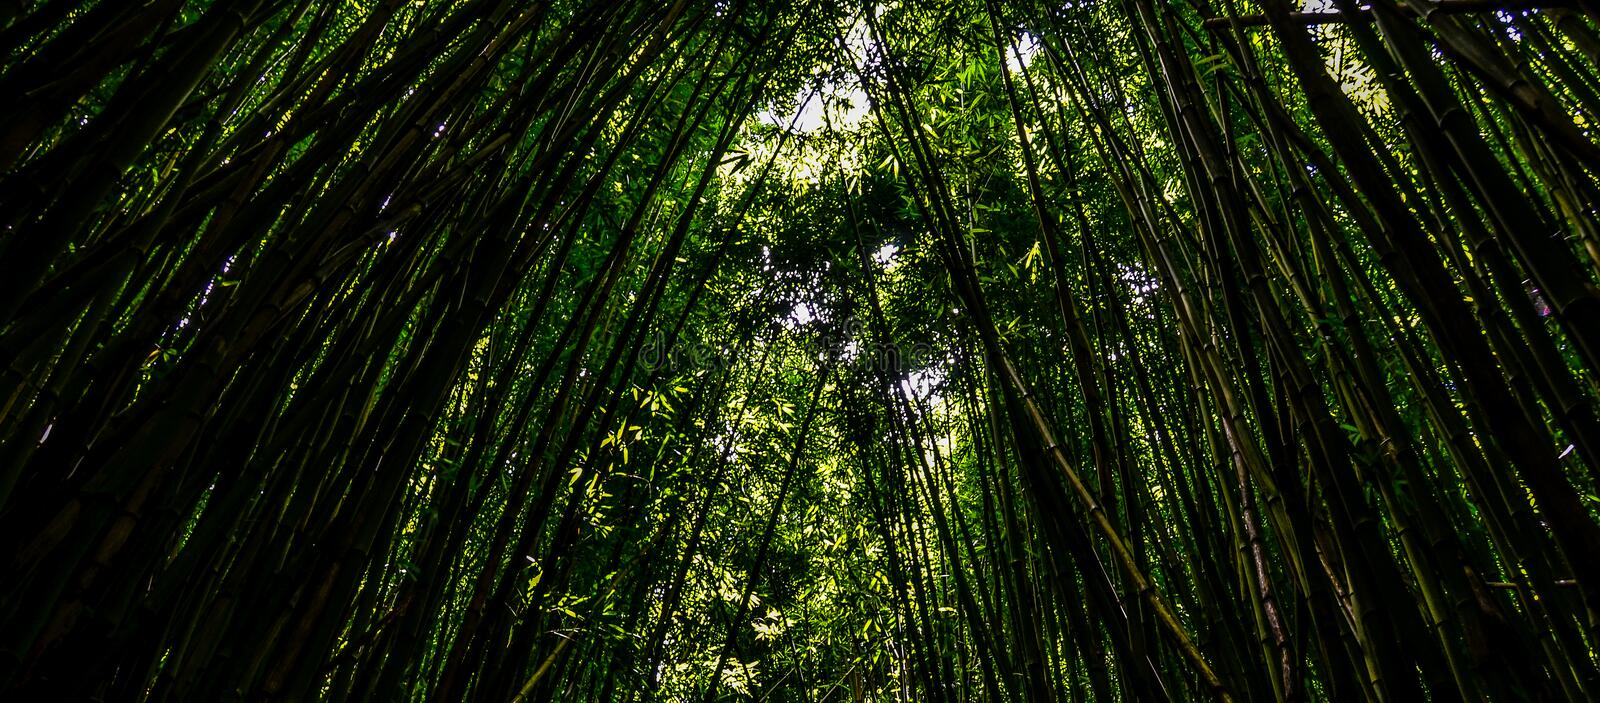 Bamboo forrest stock photo